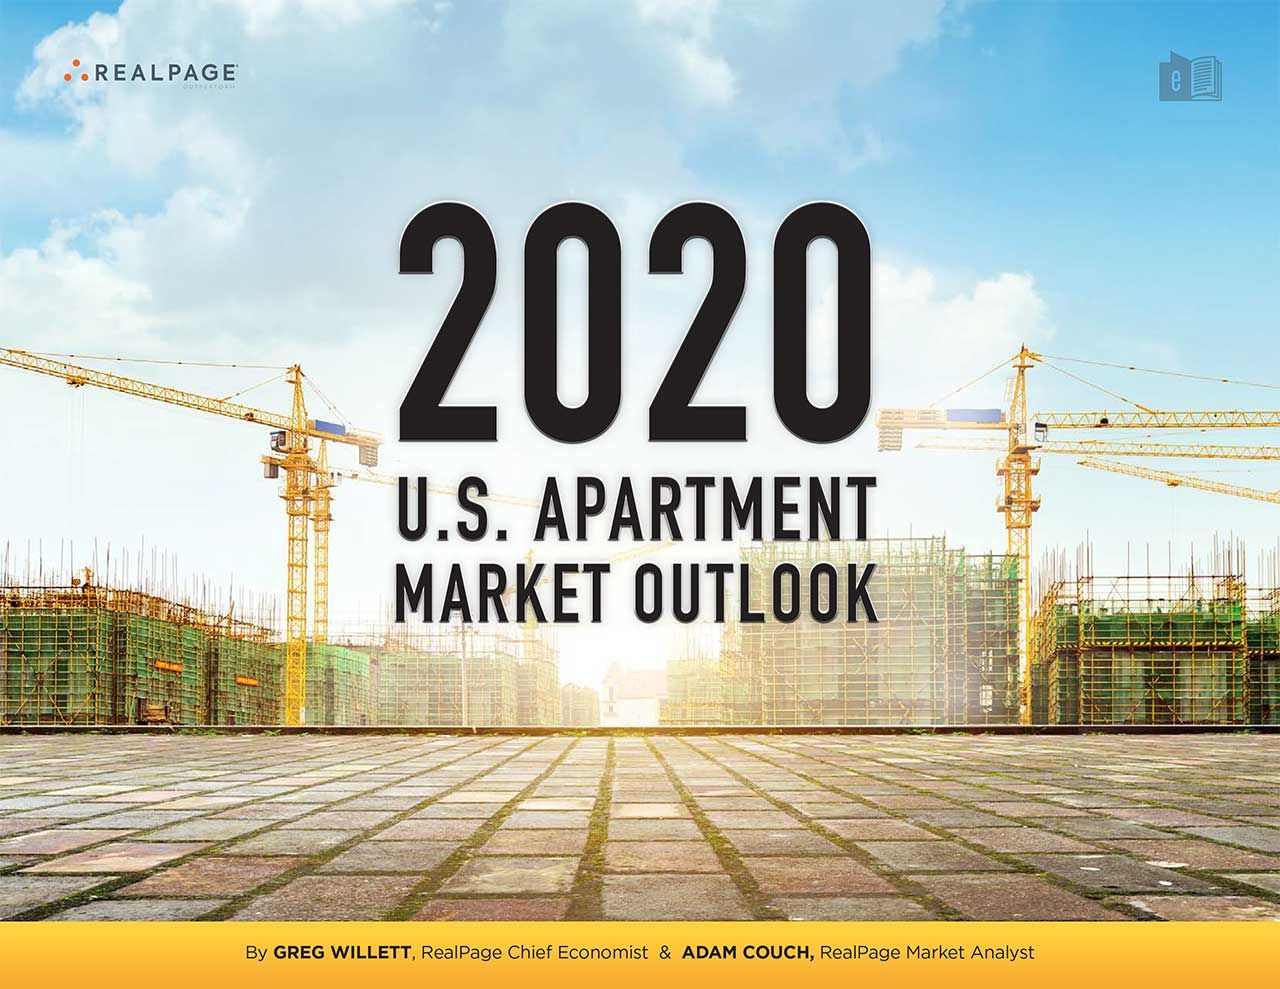 2020 u.s. apartment market outlook ebook